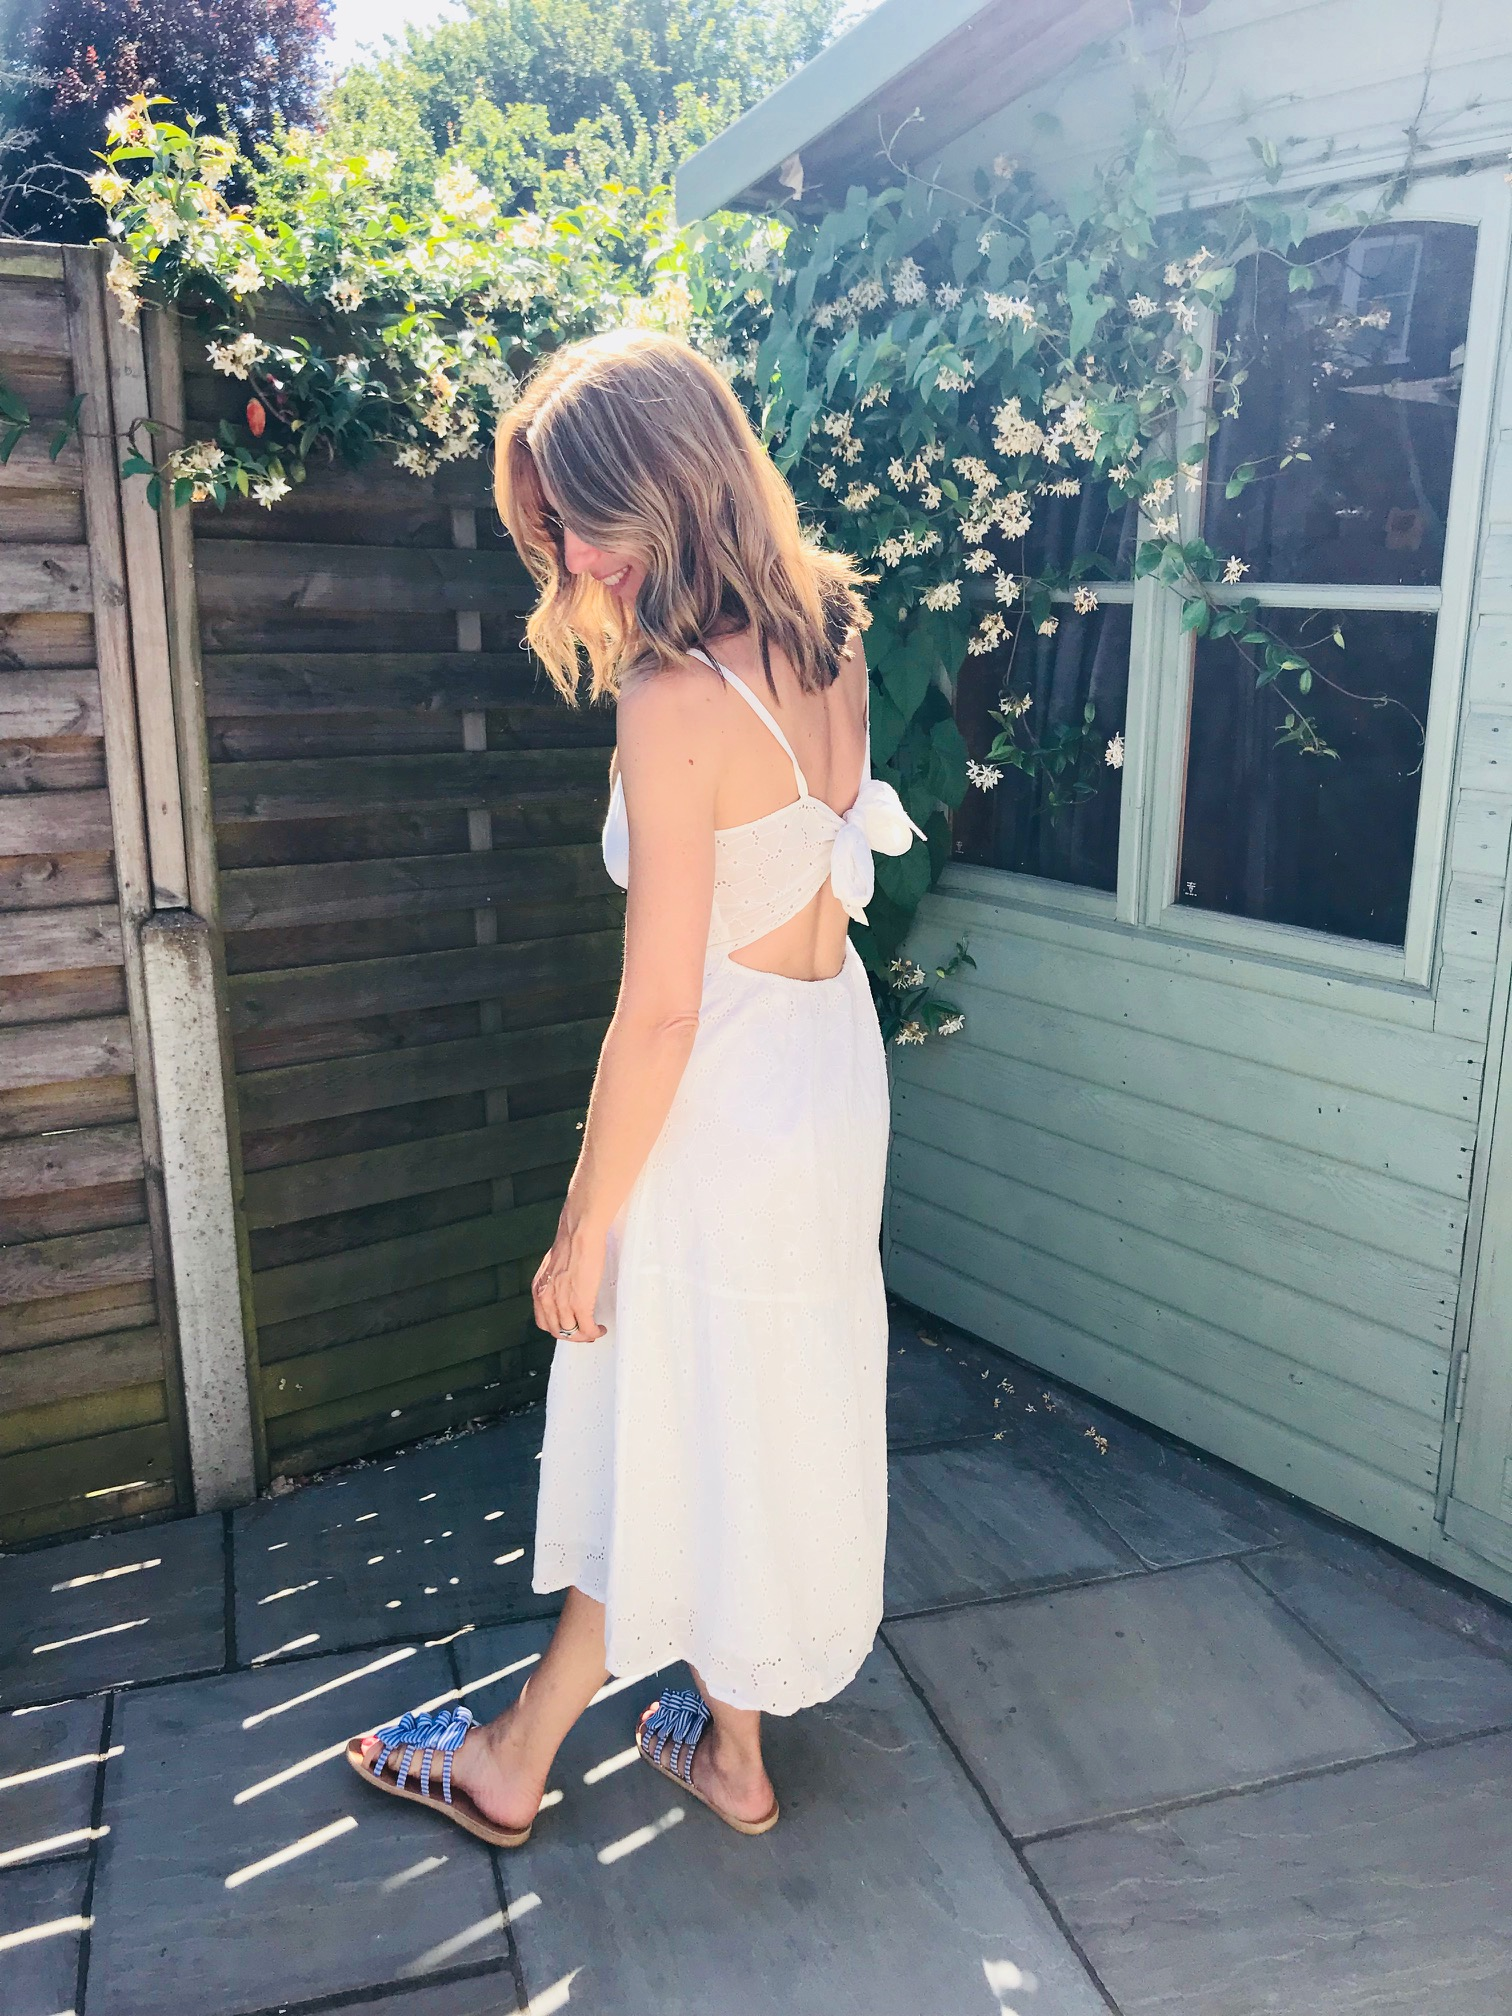 Dress - From Asos by Mango £49.99Can't wear a braLovely back detailQuite see through Very light weight fabric